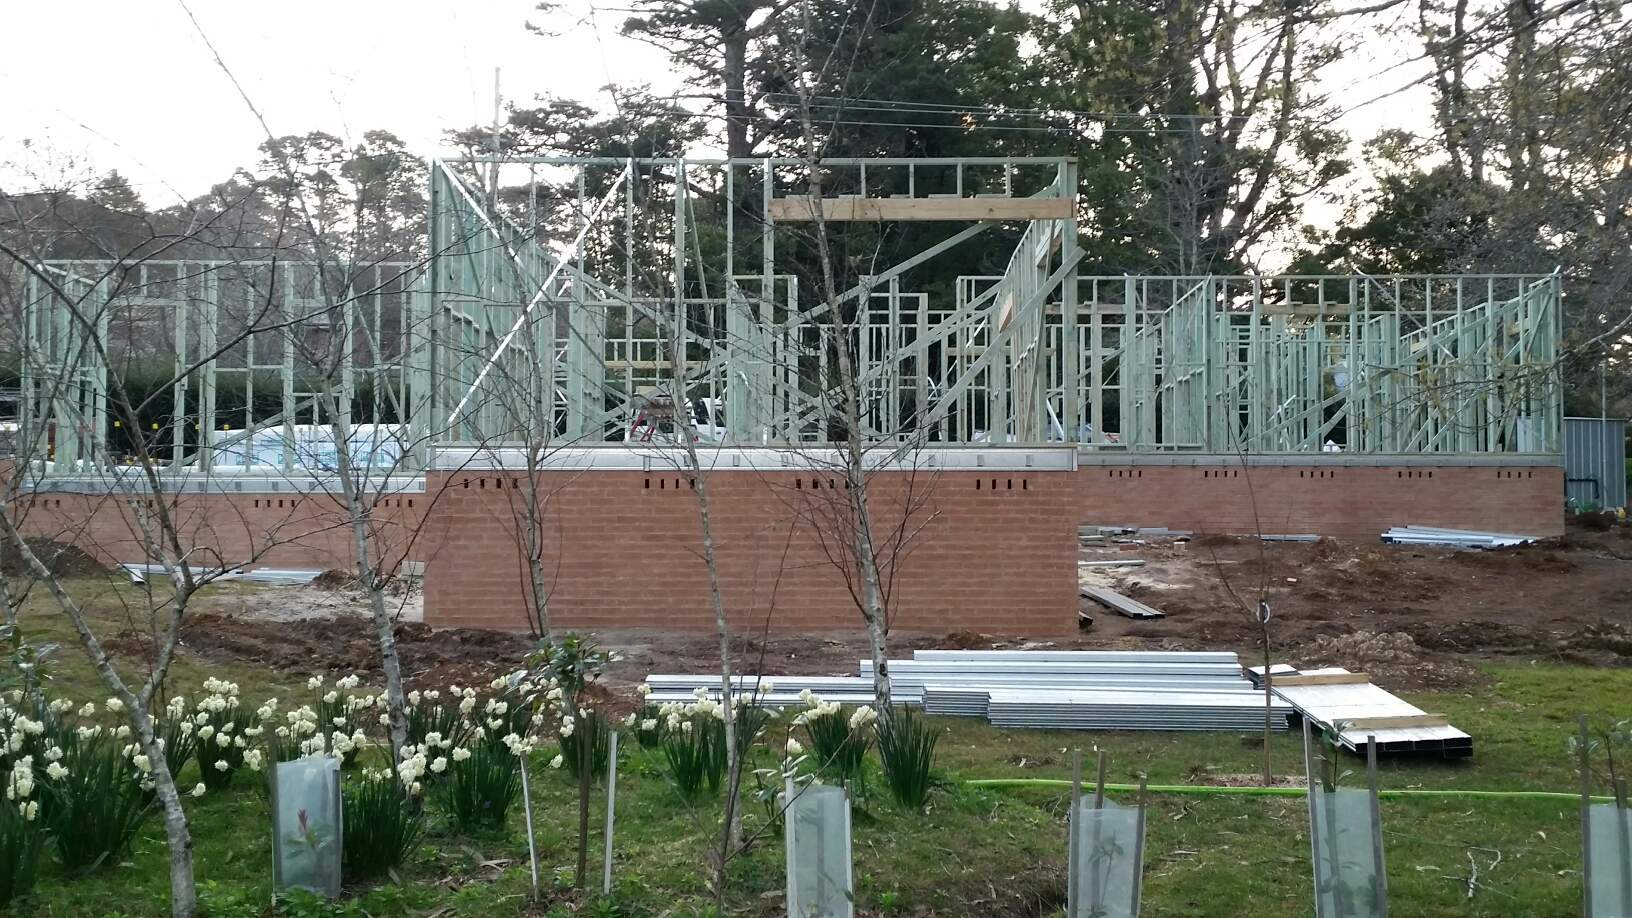 Boxspan steel floor frame with timber wall frames